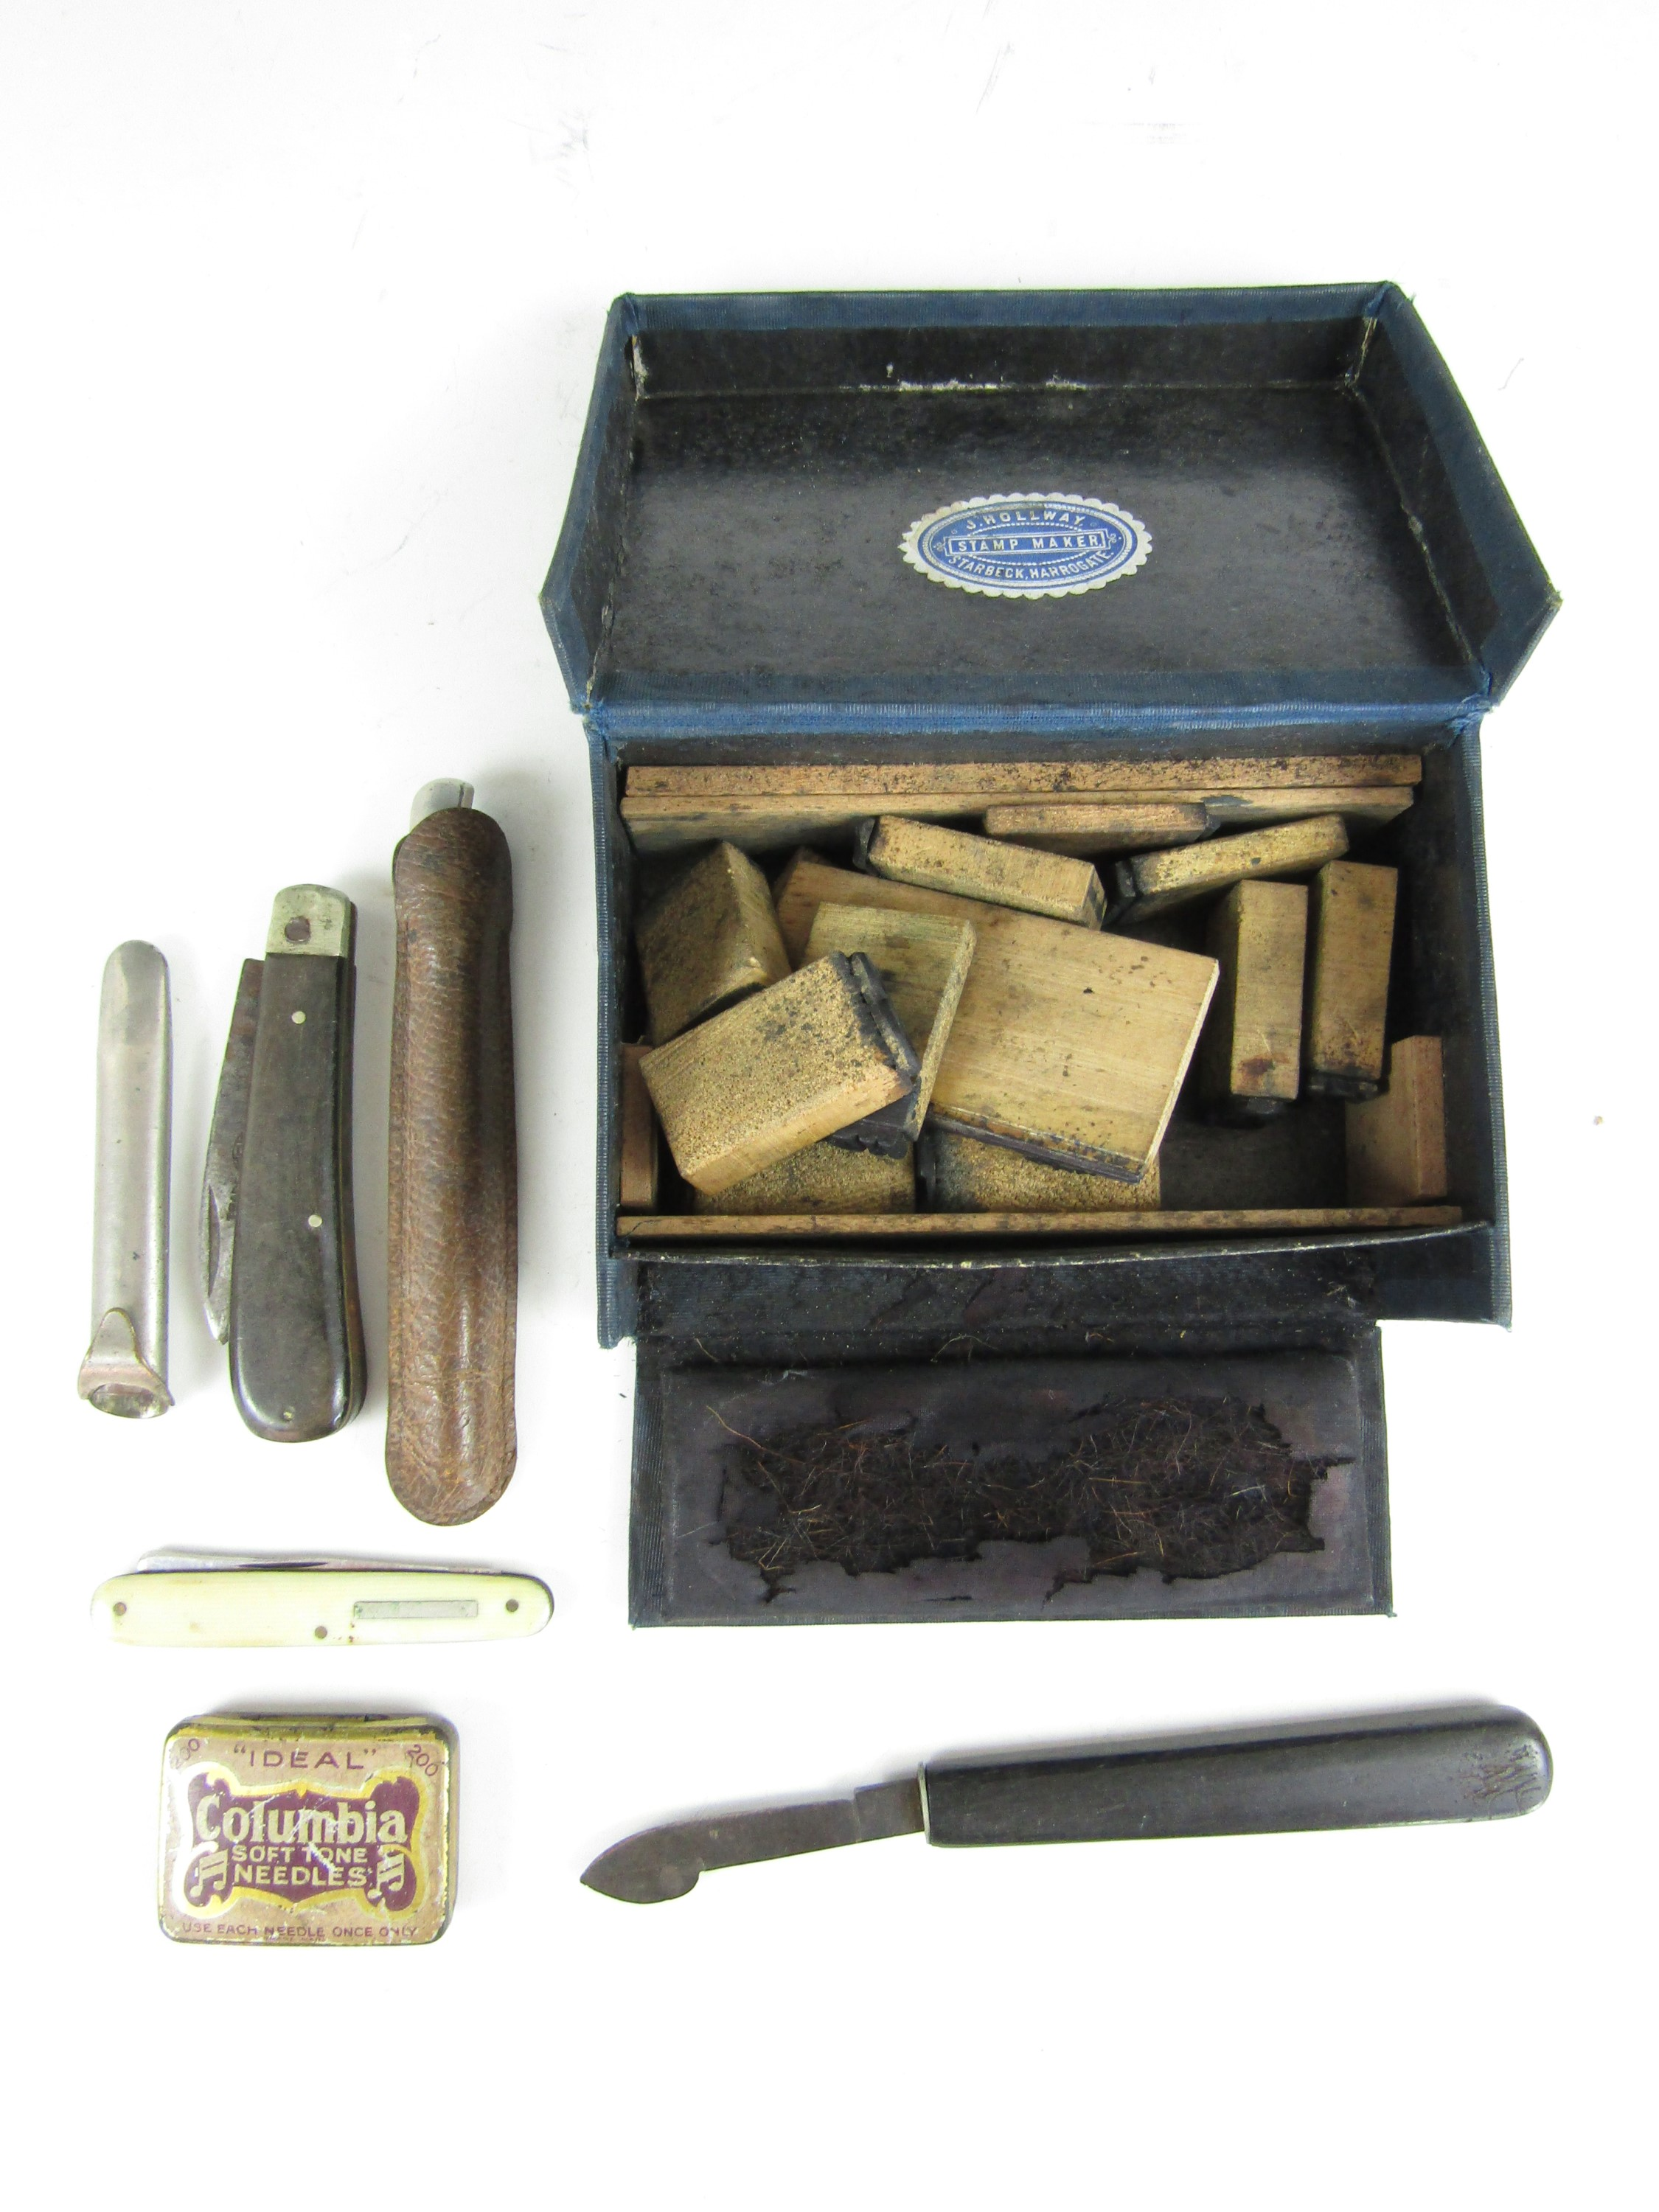 Lot 37 - A vintage Stamp Maker set retailed by J. Hollway of Harrogate, together with pen and quill knives